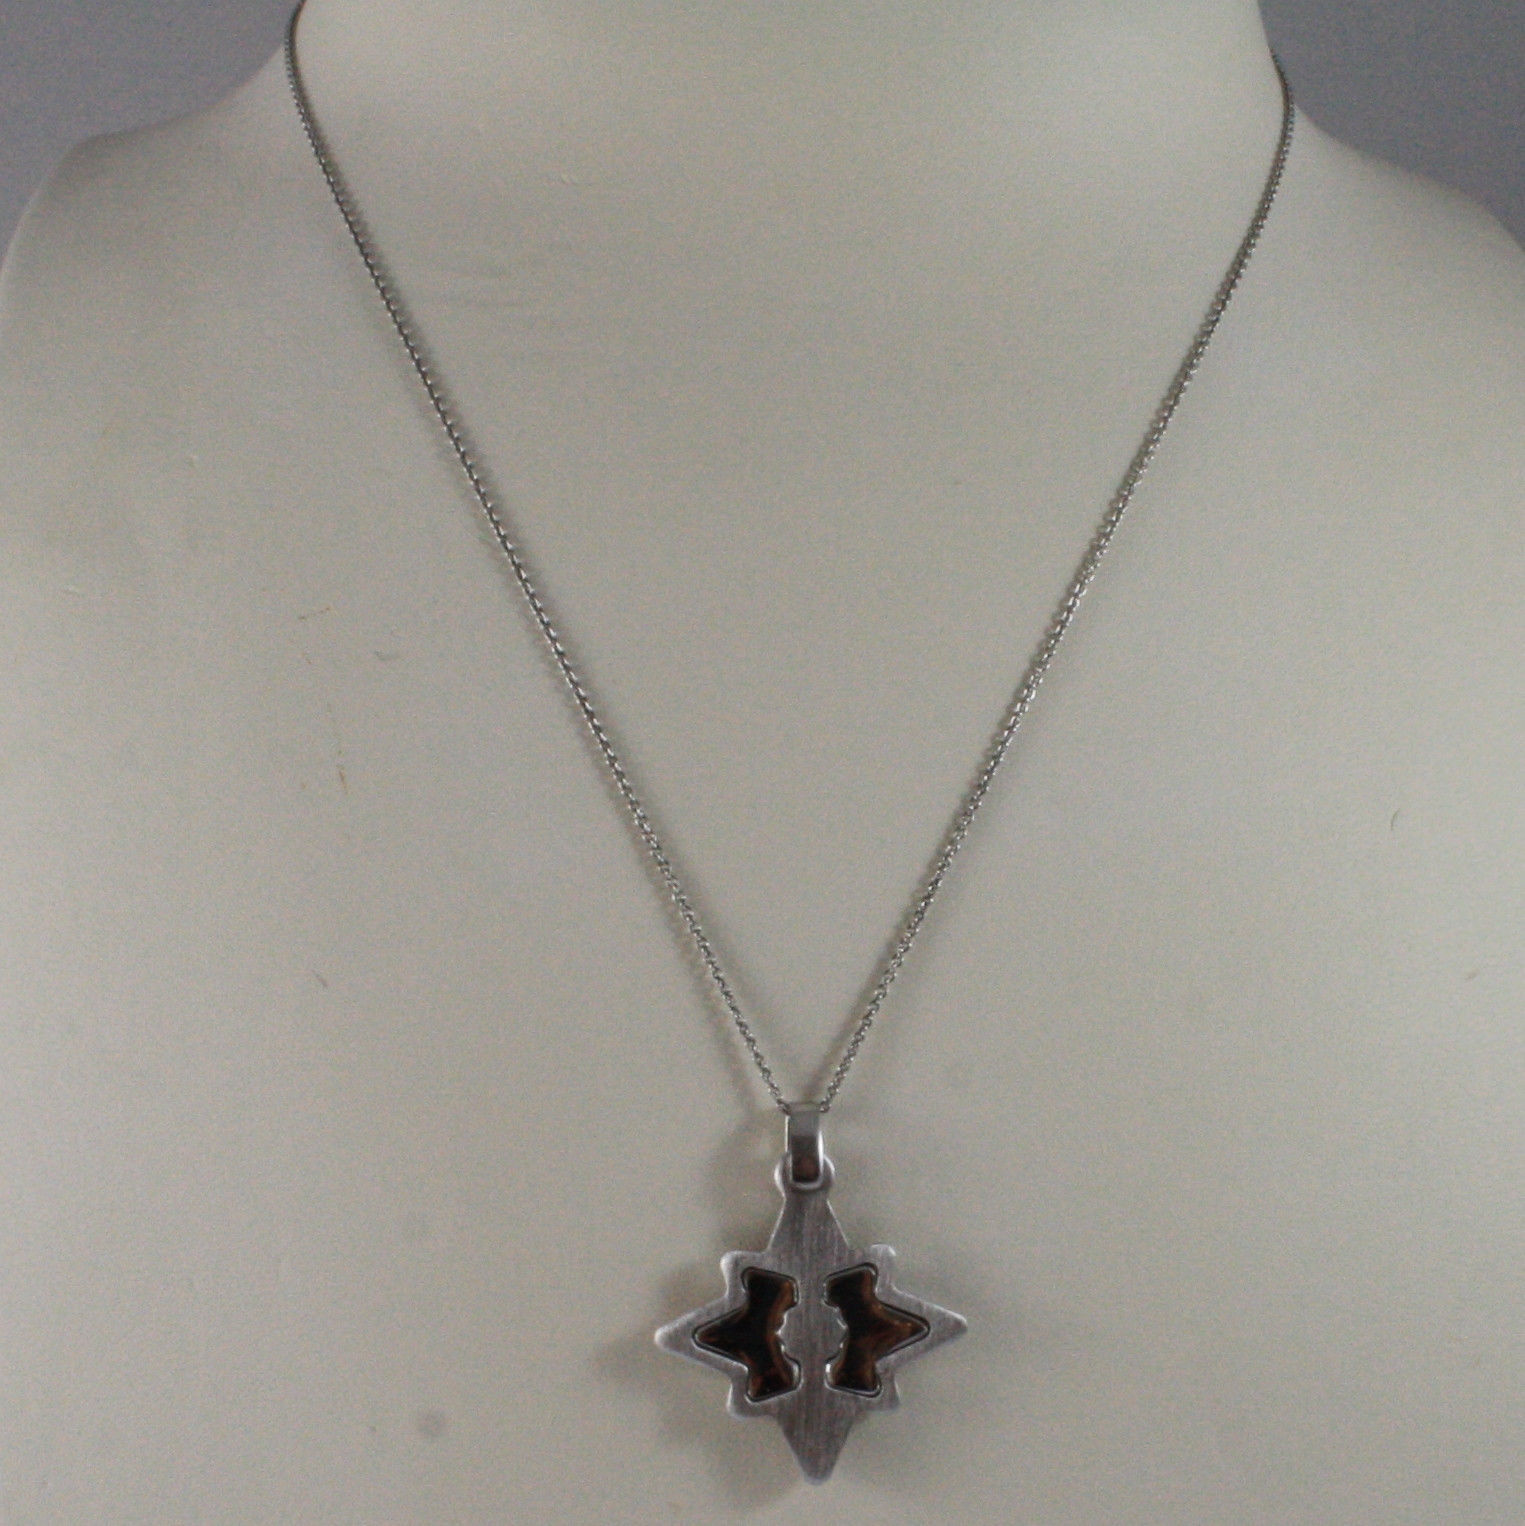 .925 SILVER RHODIUM NECKLACE WITH GLOSSY AND SATIN PENDANT.